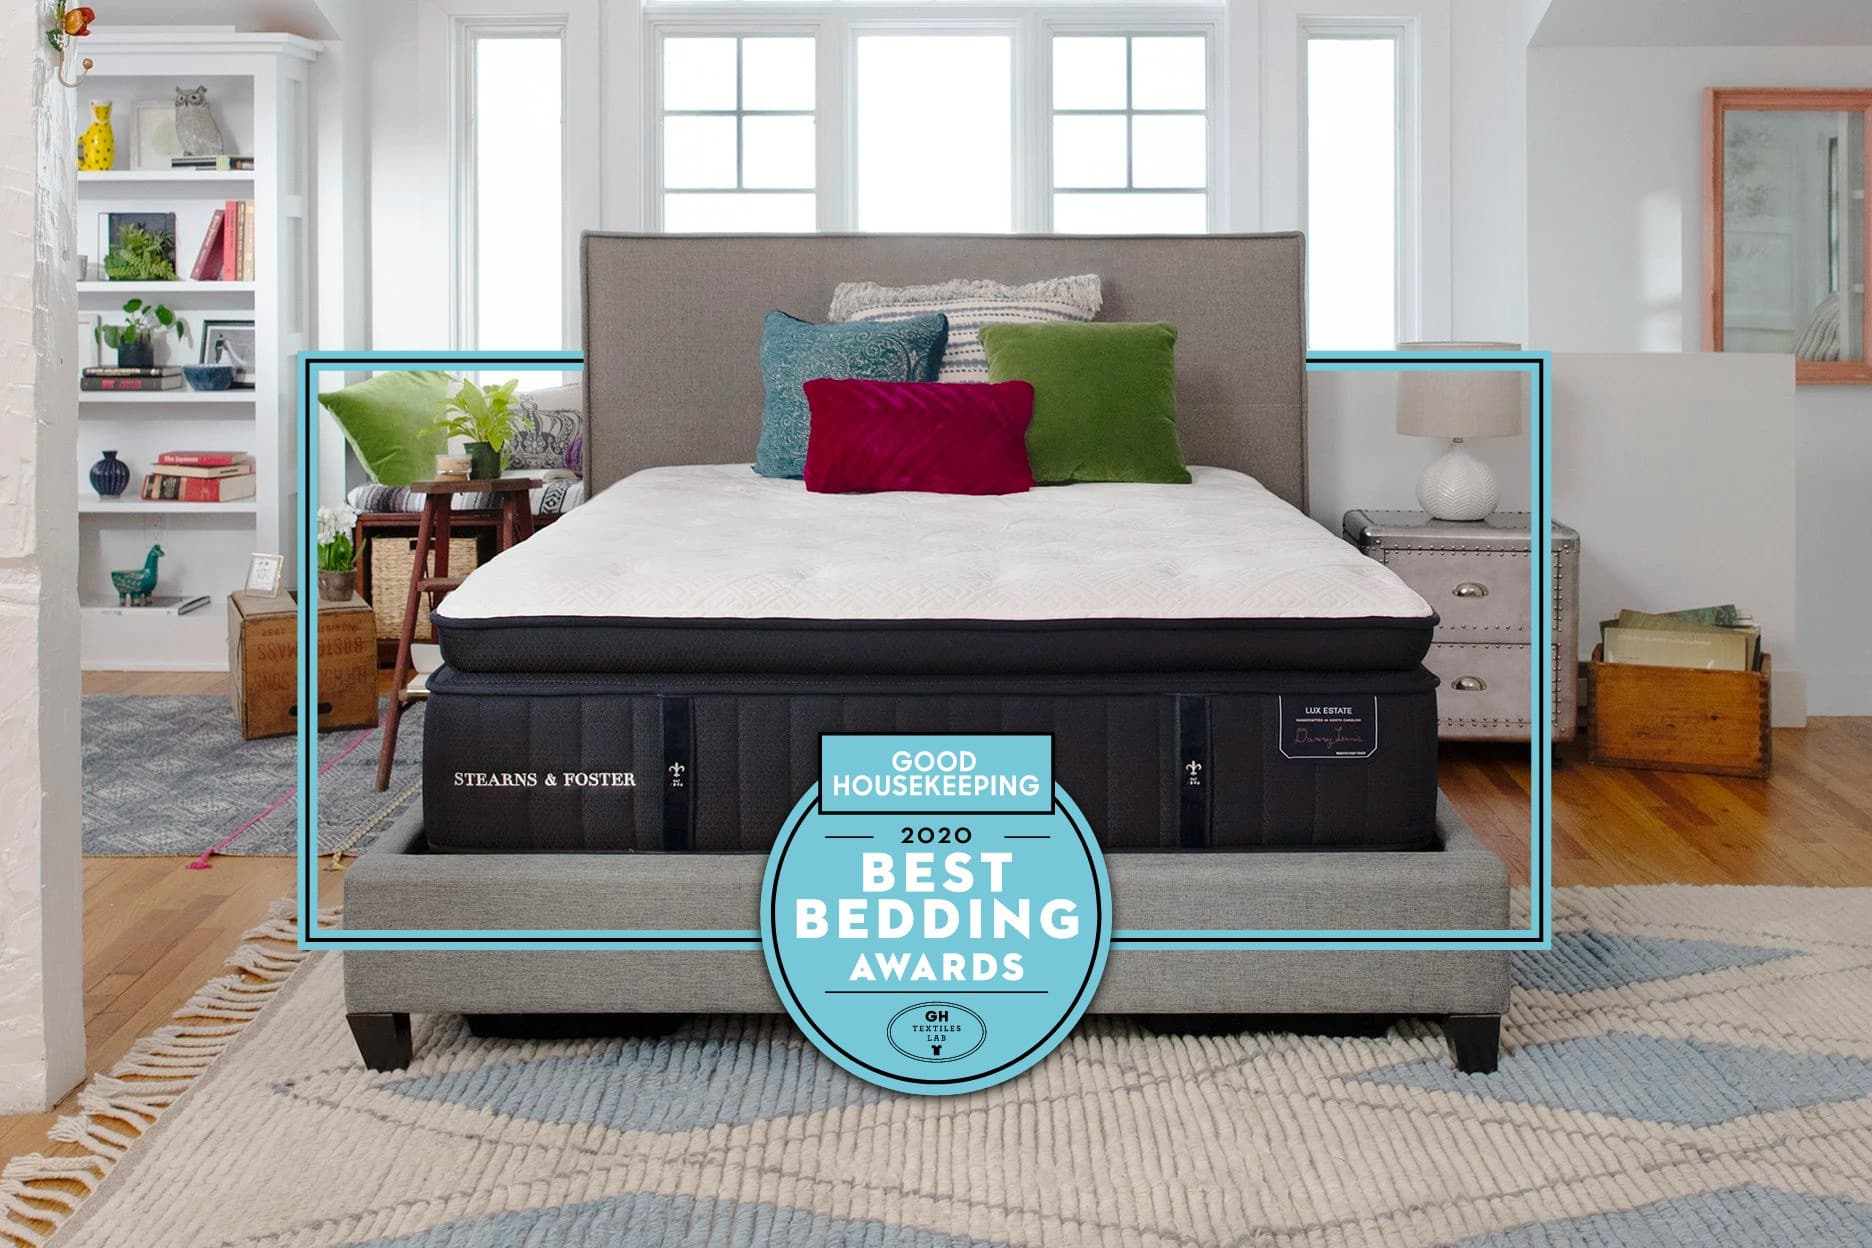 Stearns and Foster Lakeridge mattress - Cal. King/King = $950; Queen = $800 - Free Shipping with Set Up includes delivery to the room of choice, haul away, and FREE RETURNS